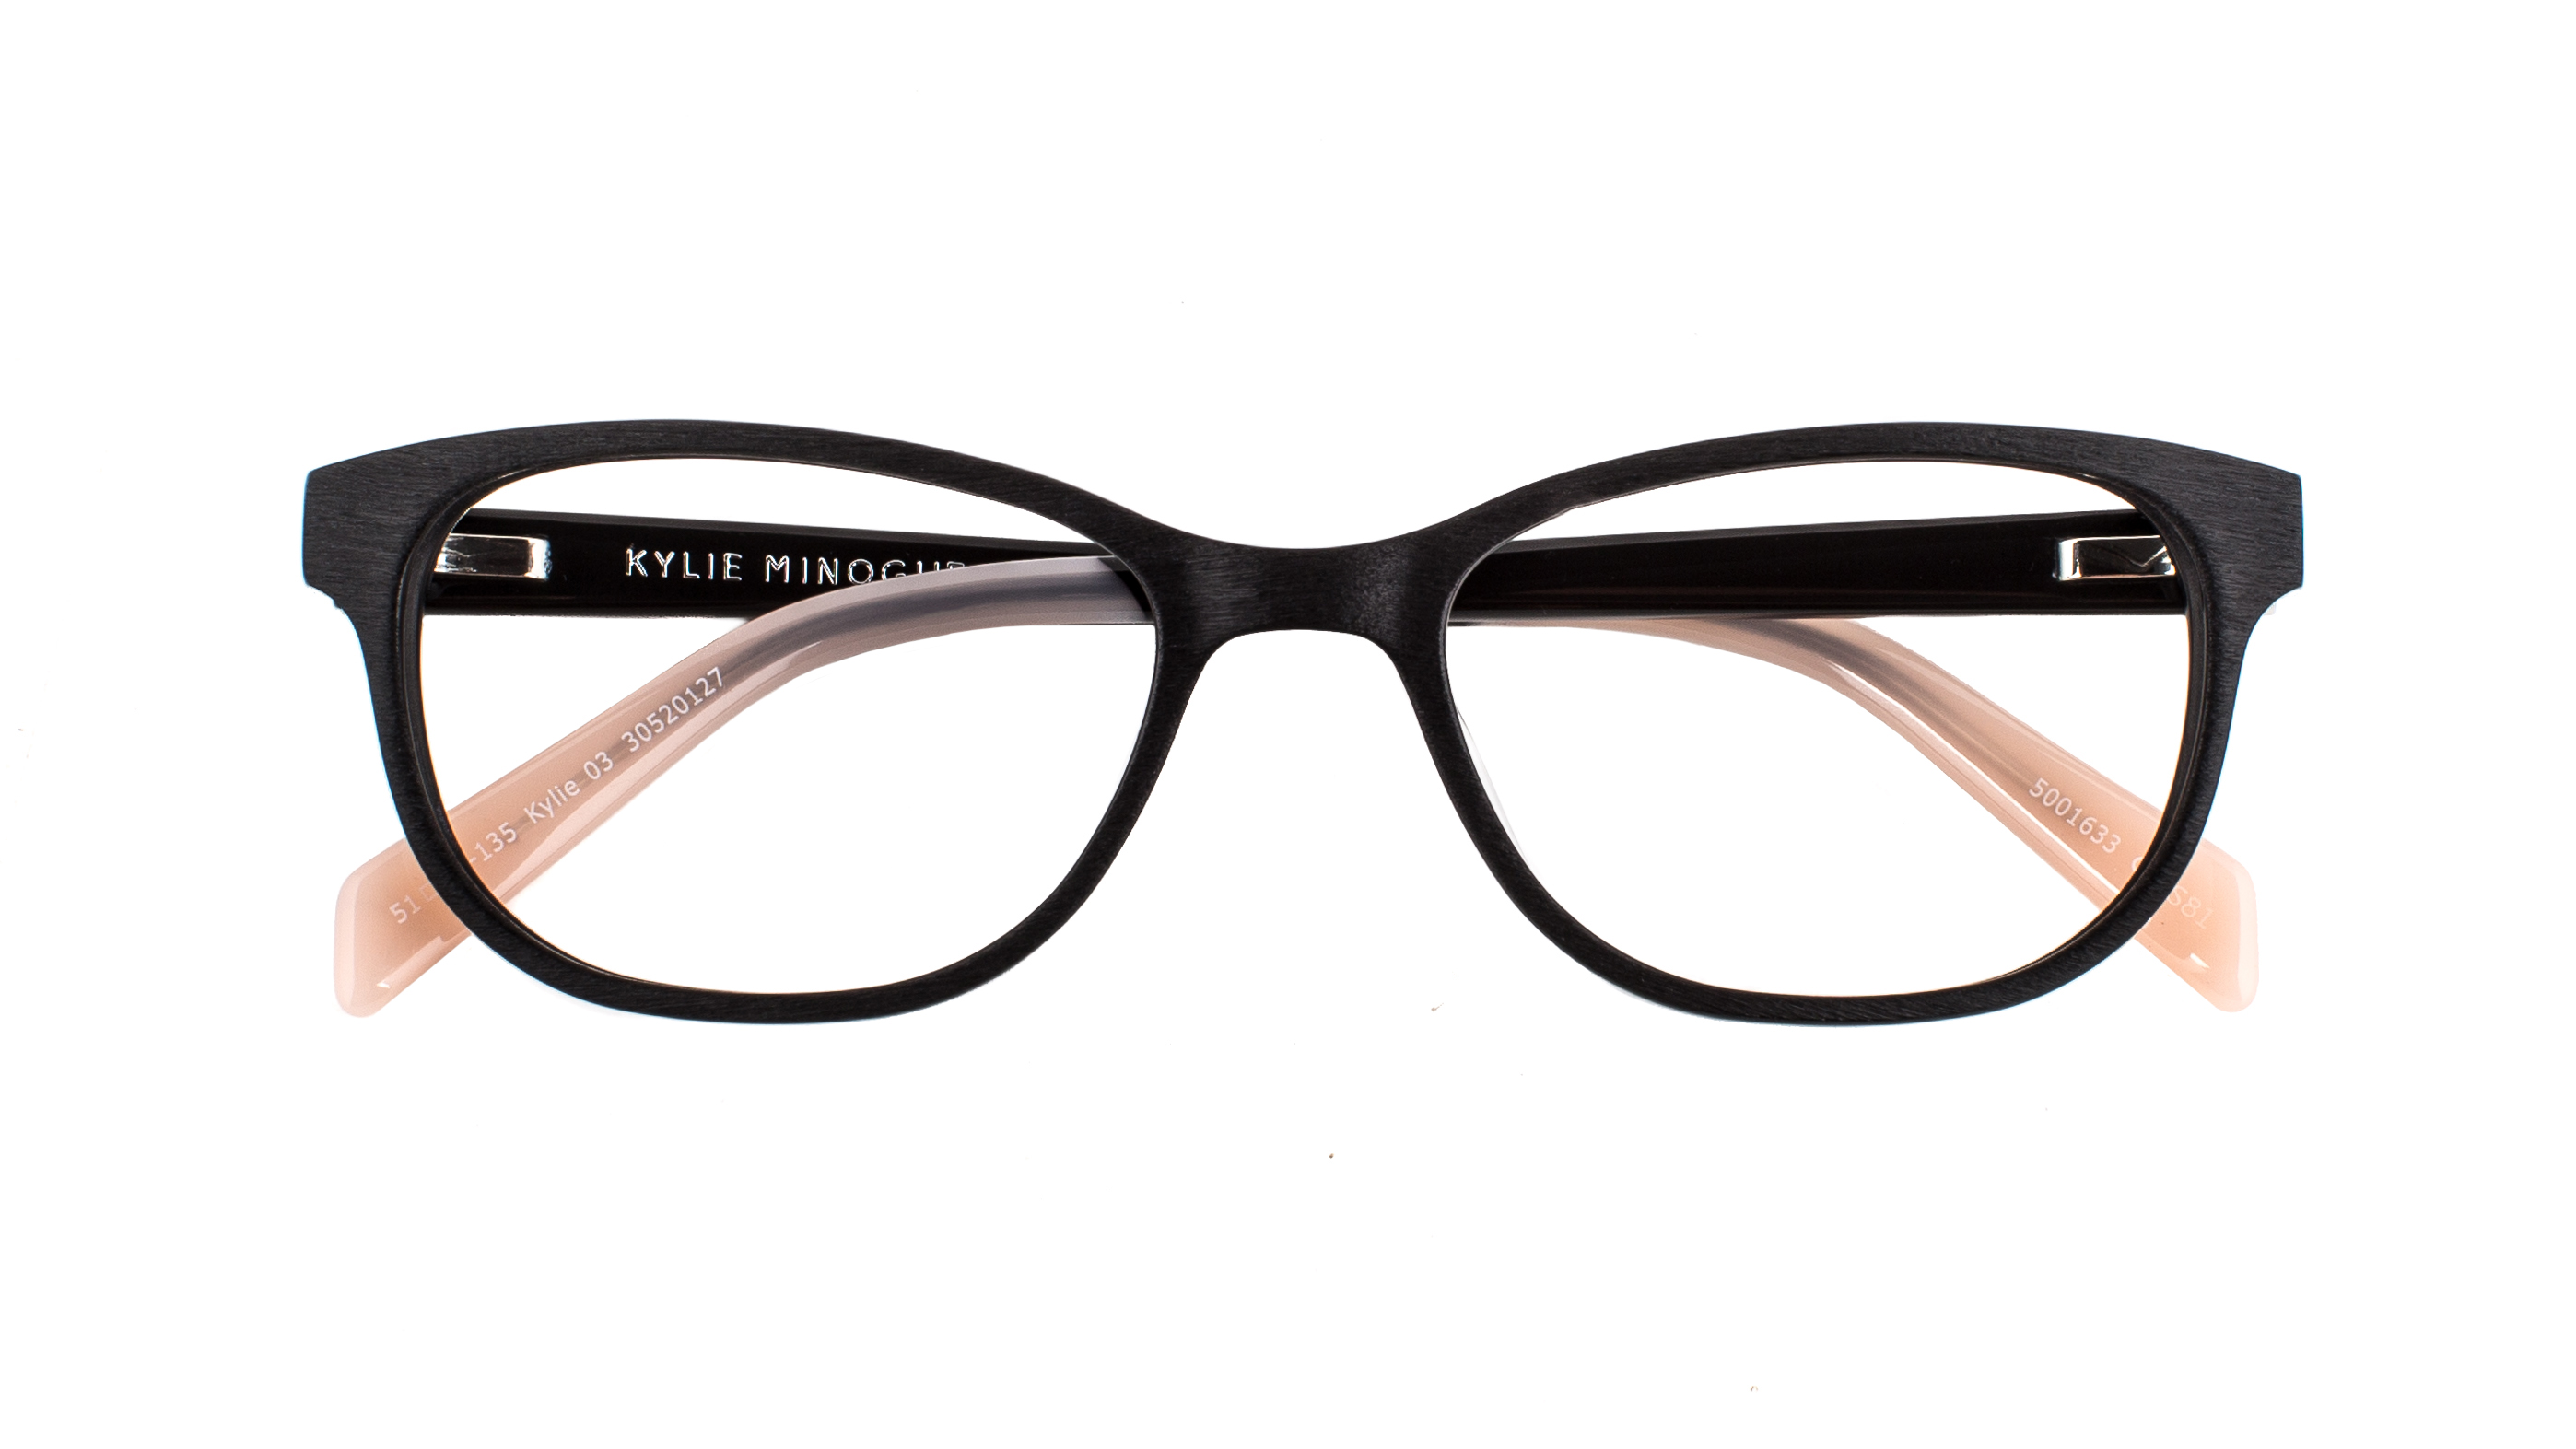 Kylie Minogue Eyewear_Kylie 03_SKU 30520127_RRP 2 pairs from $299